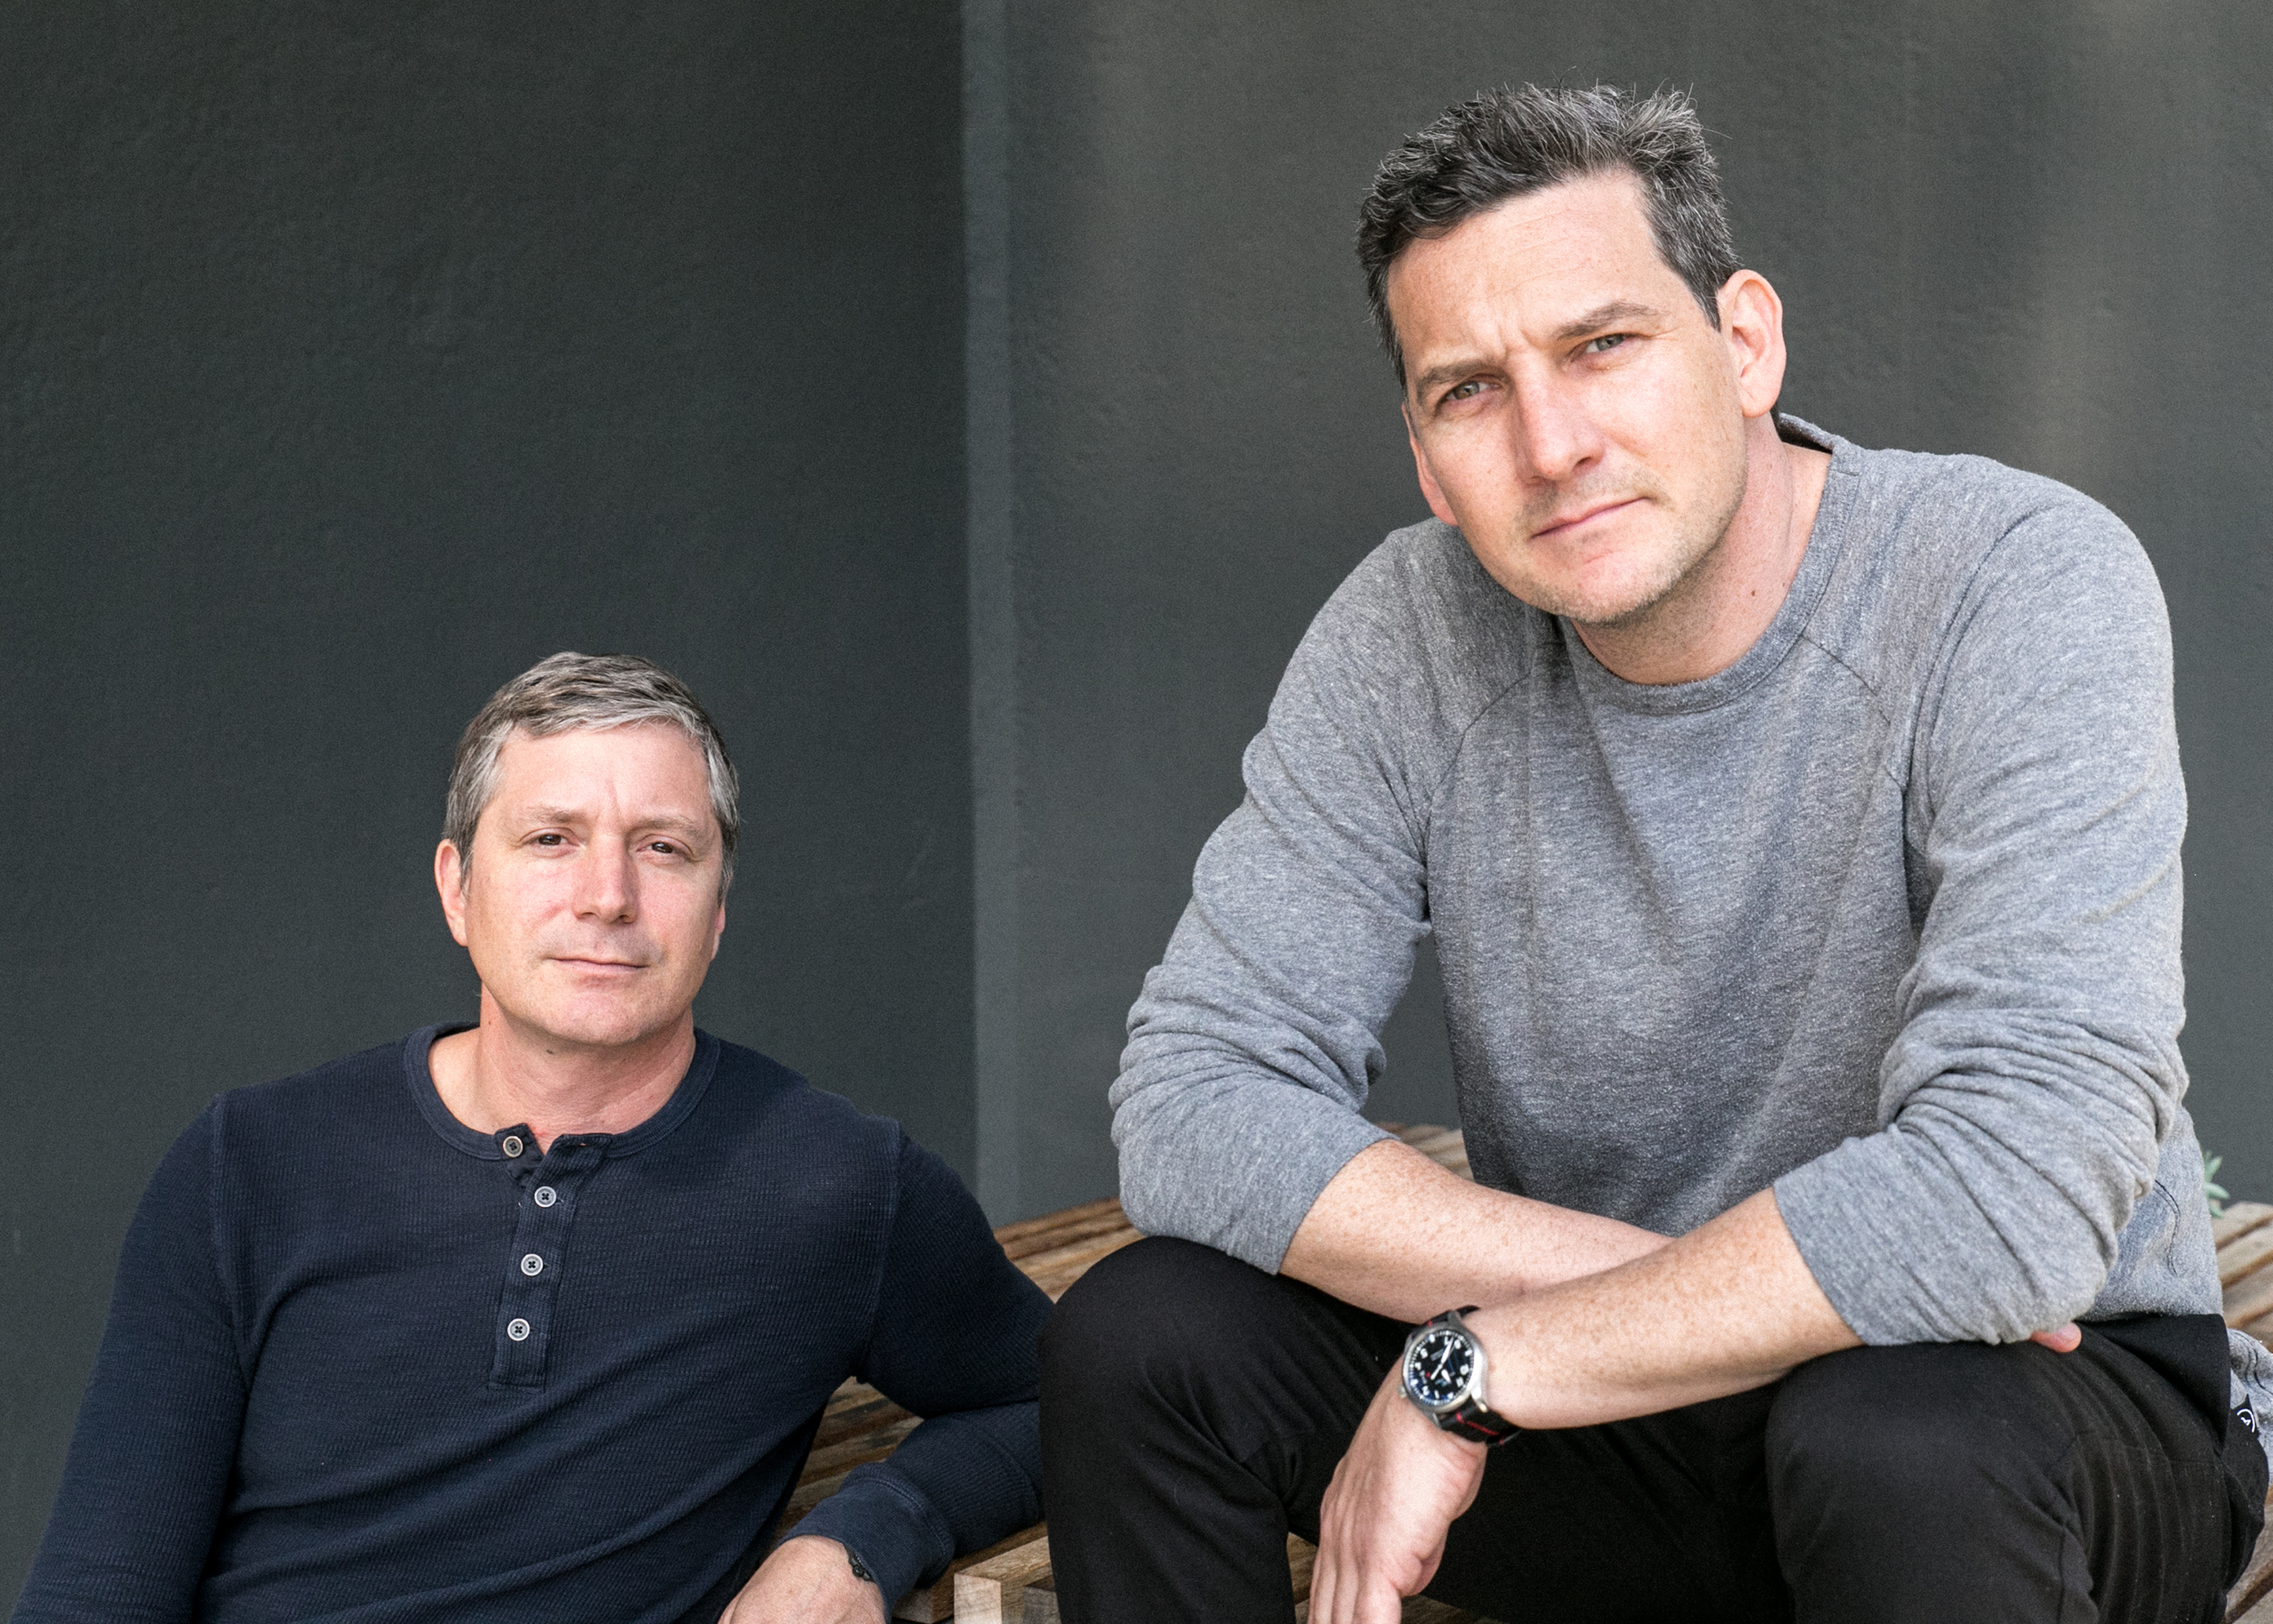 Palmer West and Jonah Smith, Designers